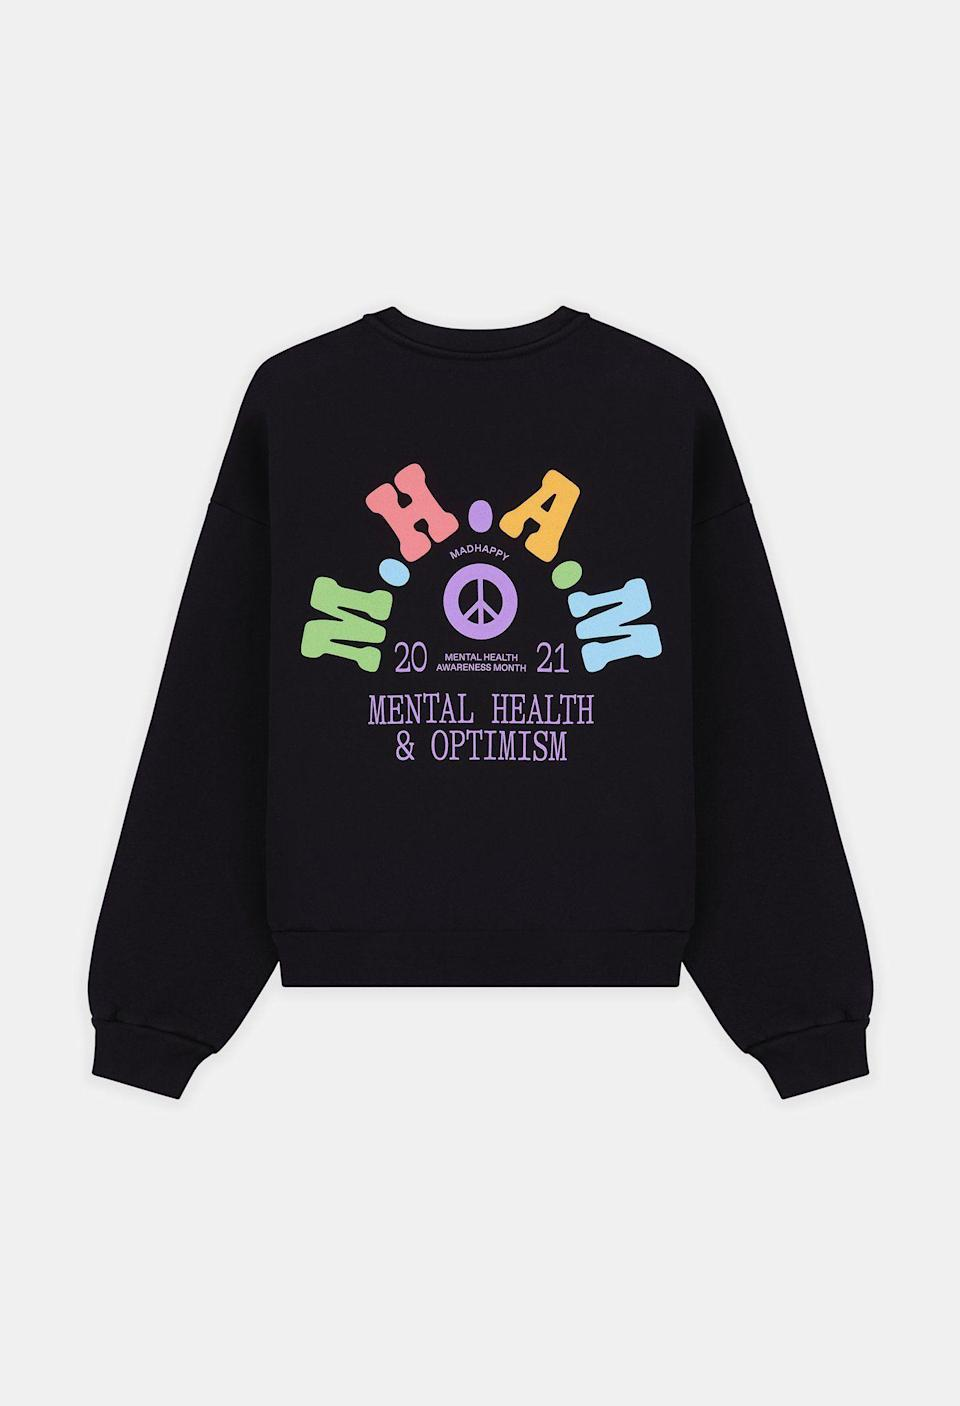 """<p><strong>Mad Happy</strong></p><p>madhappy.com</p><p><strong>$165.00</strong></p><p><a href=""""https://www.madhappy.com/collections/homepage-feature/products/mental-health-heritage-crewneck?variant=39301493850223"""" rel=""""nofollow noopener"""" target=""""_blank"""" data-ylk=""""slk:SHOP NOW"""" class=""""link rapid-noclick-resp"""">SHOP NOW</a></p><p>The colorful vintage-inspired graphics on this oversized sweatshirt are enough to spread smiles, but you'll get an extra boost knowing that 10 percent of sales benefit <a href=""""https://www.projecthealthyminds.com/"""" rel=""""nofollow noopener"""" target=""""_blank"""" data-ylk=""""slk:Project Healthy Minds"""" class=""""link rapid-noclick-resp"""">Project Healthy Minds</a>, a nonprofit aiming to close the mental health treatment gap through technology. </p>"""